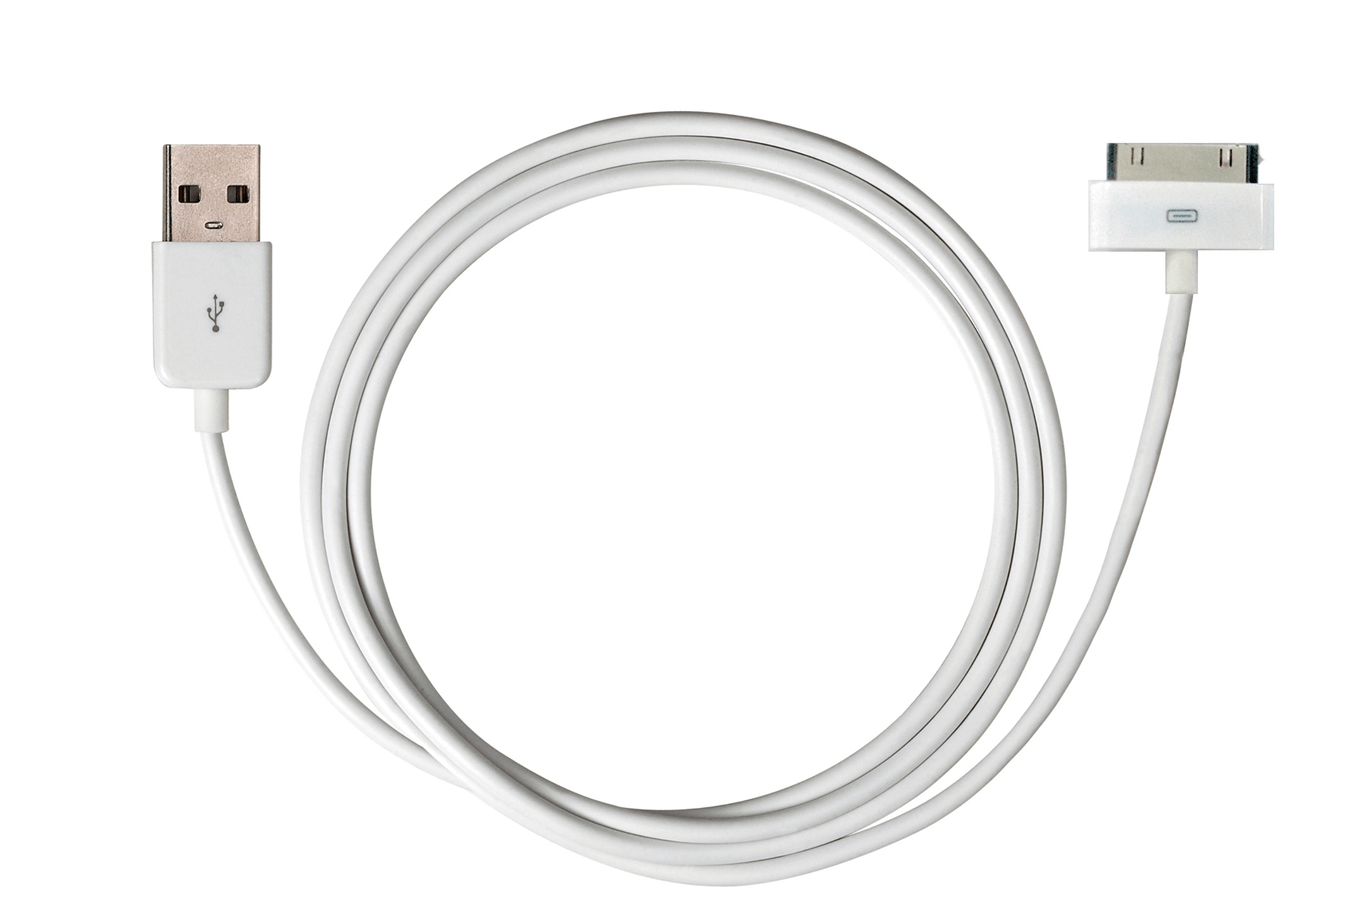 Espace Client Darty Câble Iphone Temium Cable 30 Pin 1m Blanc Mfi 000